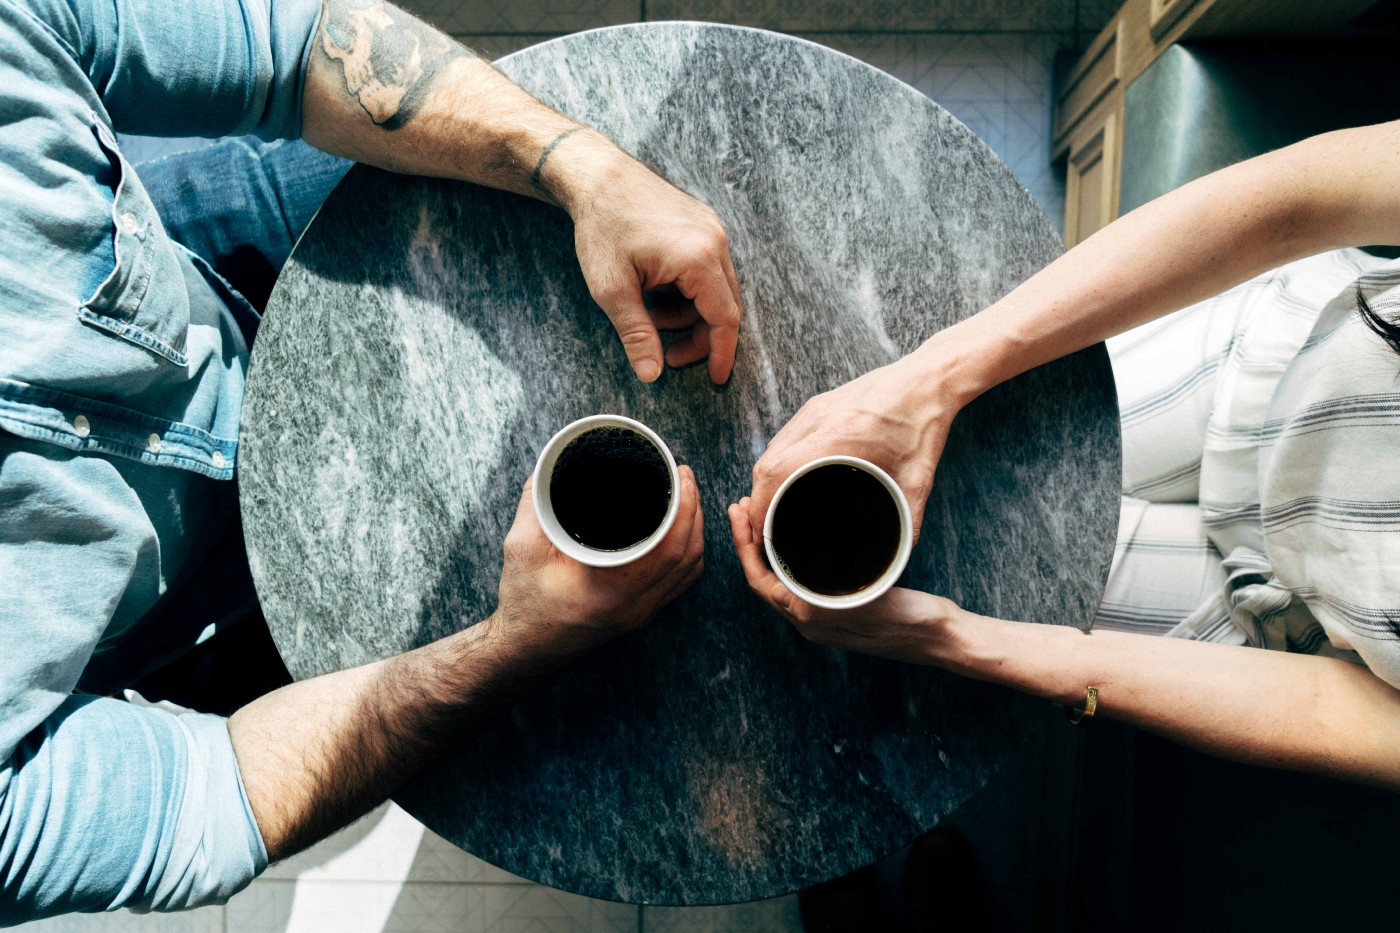 An aerial view of two people meeting at a round table. Both people have coffee in their hands.